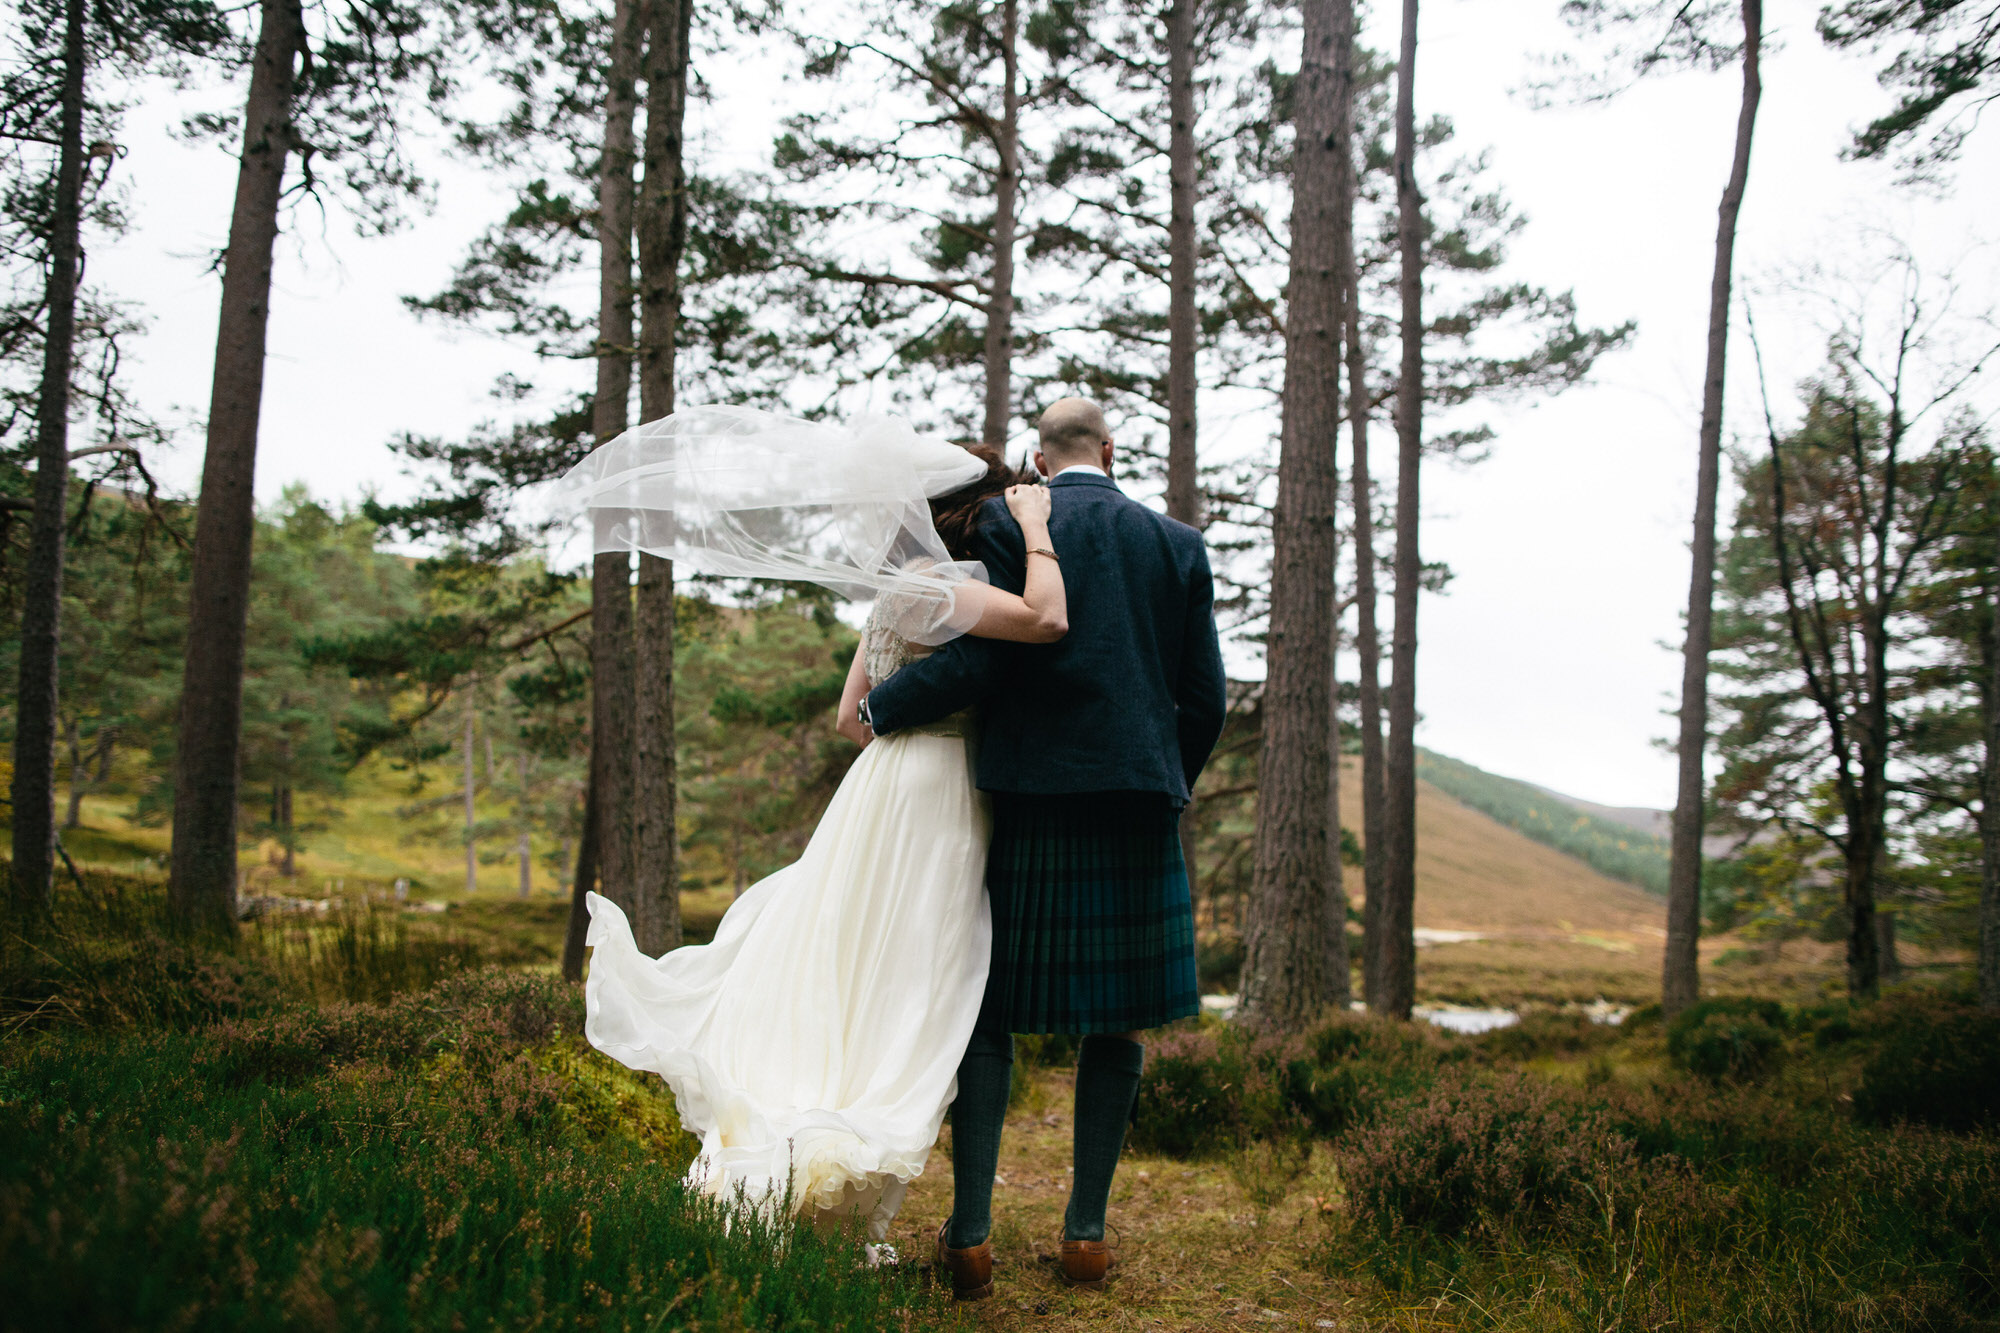 Alternative Natural Quirky Wedding Photographs UK Scotland 172.jpg